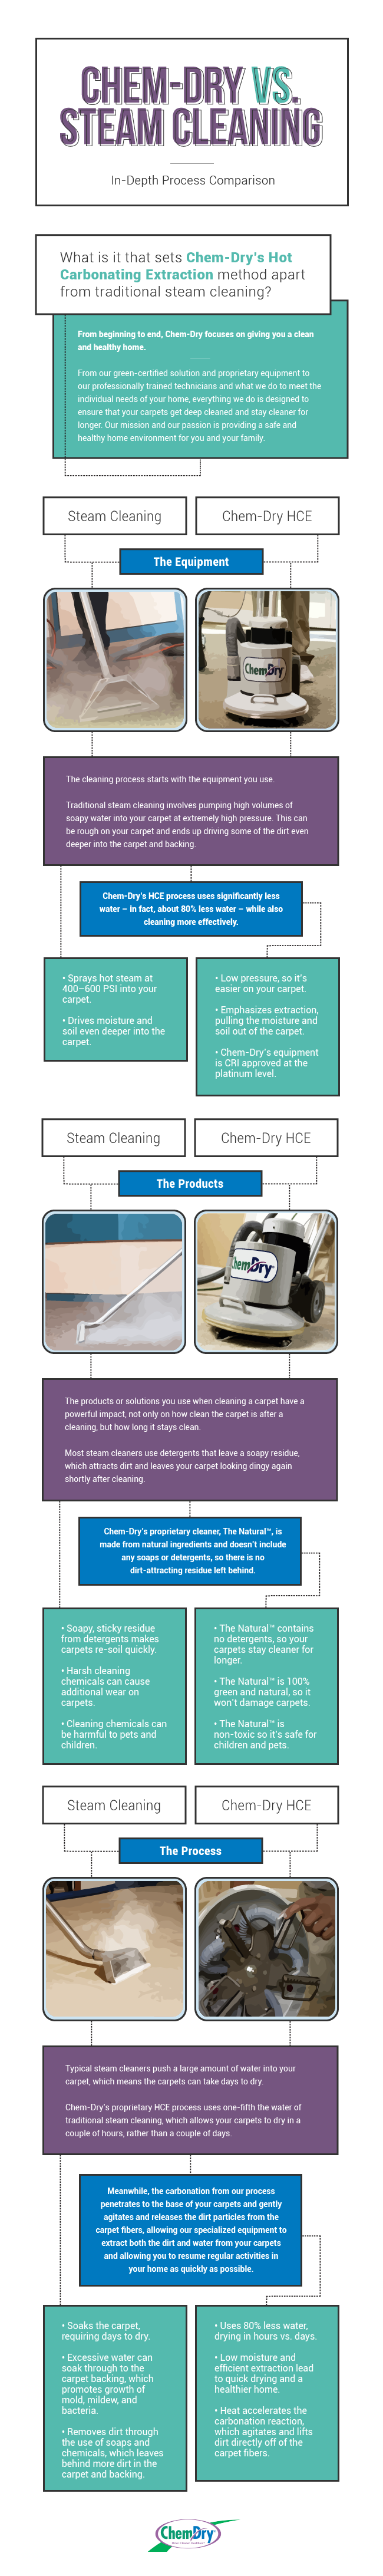 Hot Carbonating Extraction vs Steam Cleaning